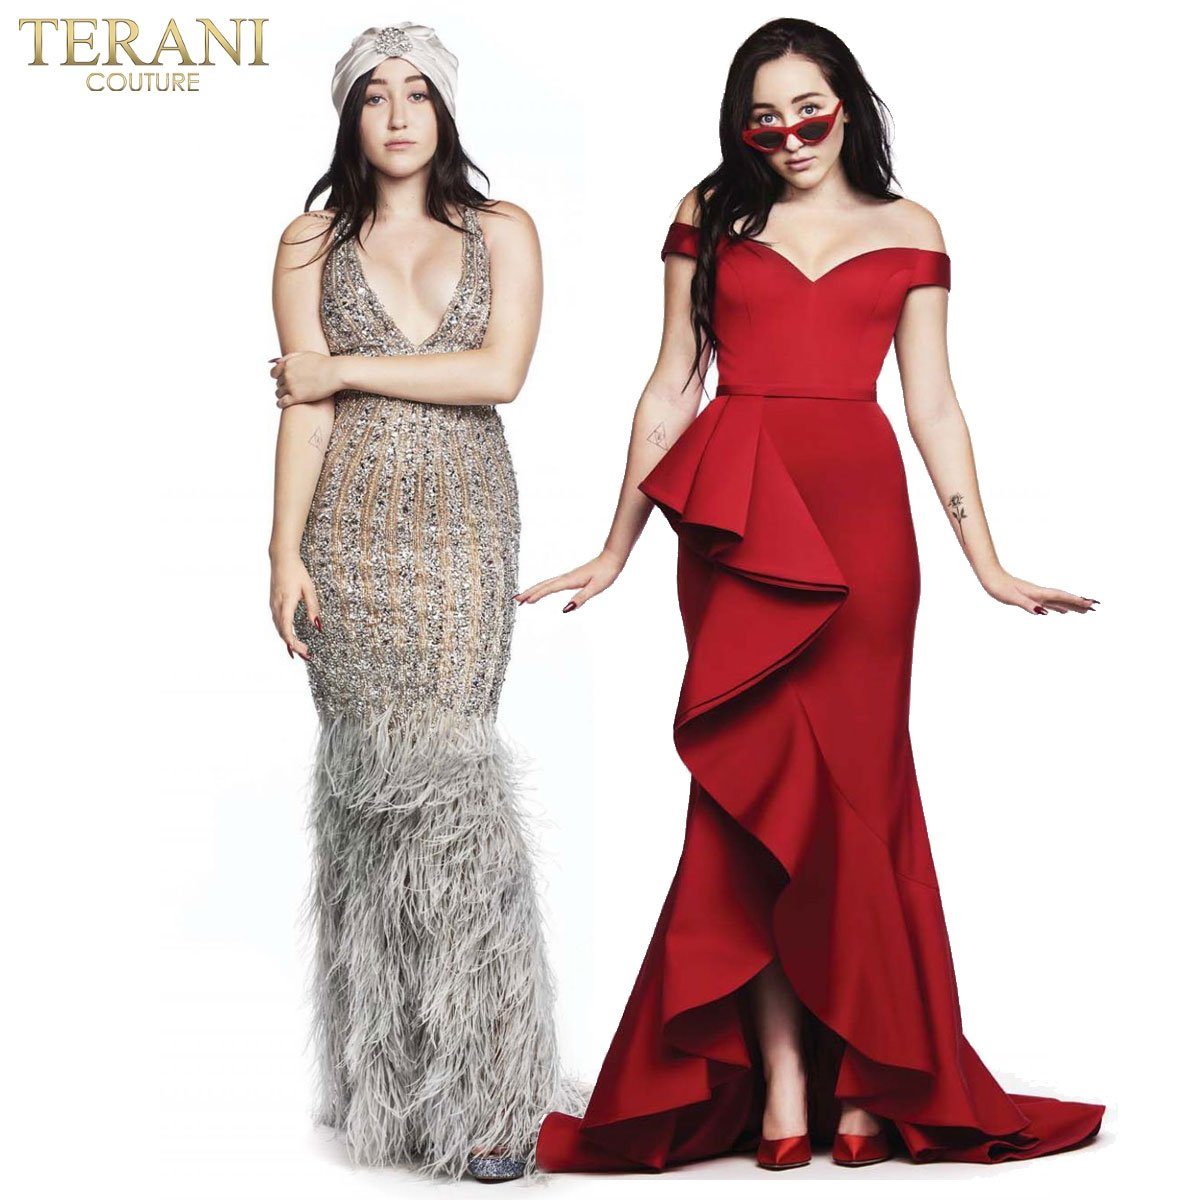 NOAH CYRUS COMPARES TERANI LOOK TO STYLE OF MARILYN MONROE ...